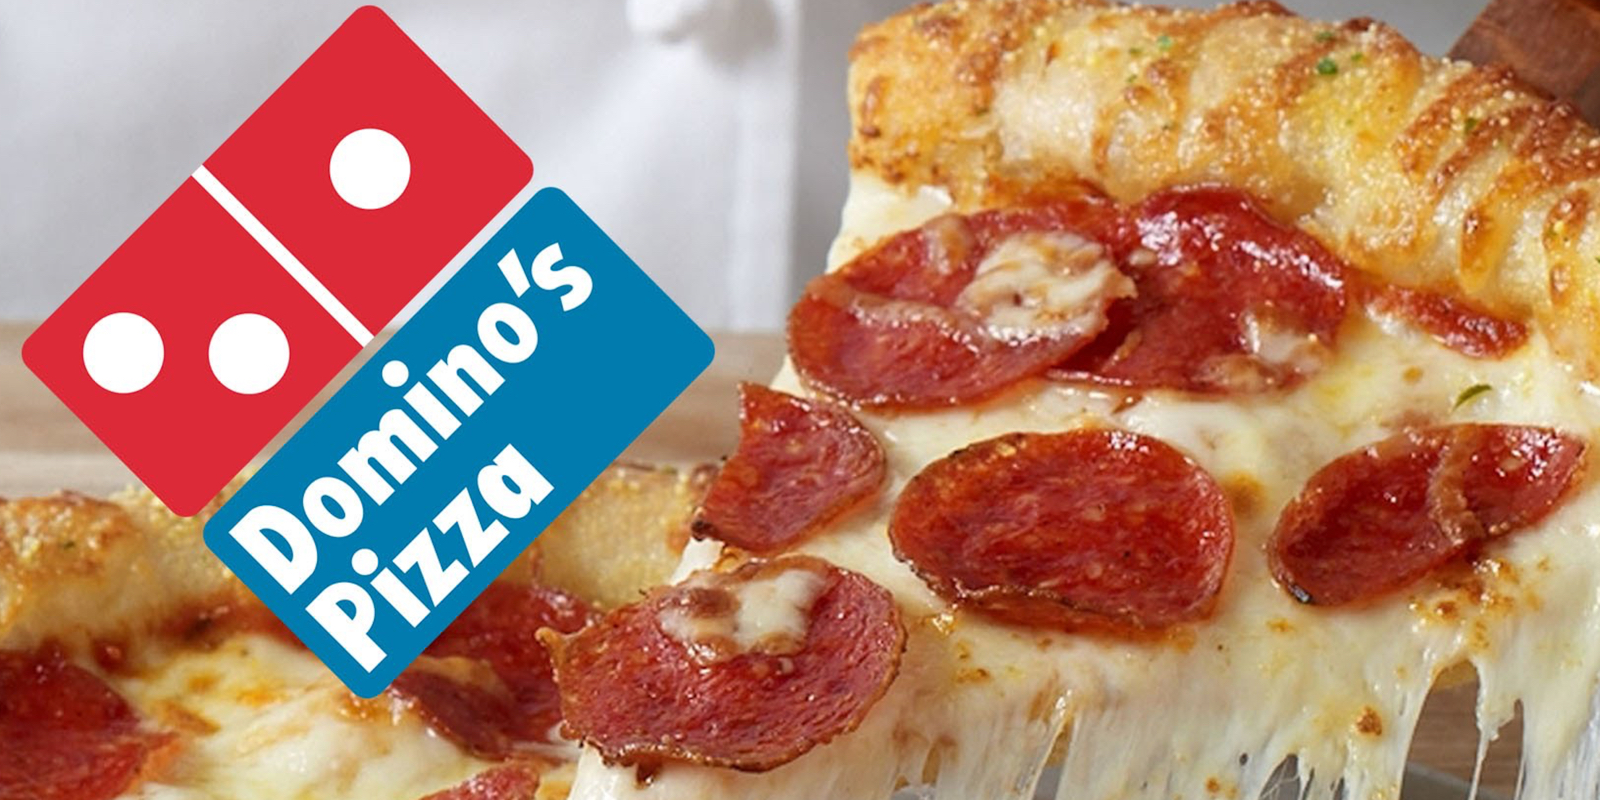 Gift card deals up to 20% off: Domino's, BJ's, Famous Footwear, more